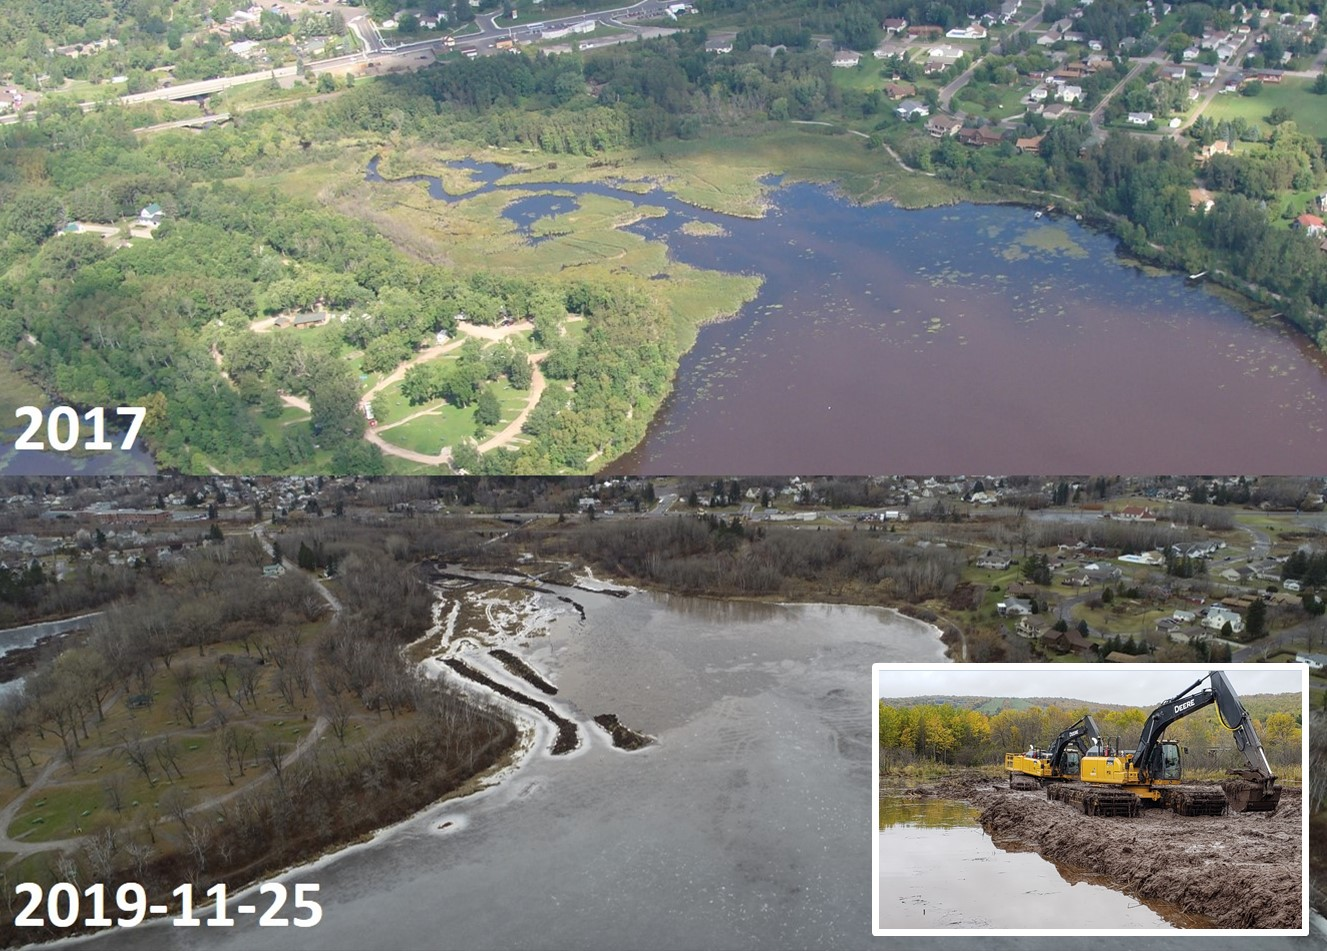 Split image of the waterway before restoration and after, where invasive plants have been removed and the waterway cleared.